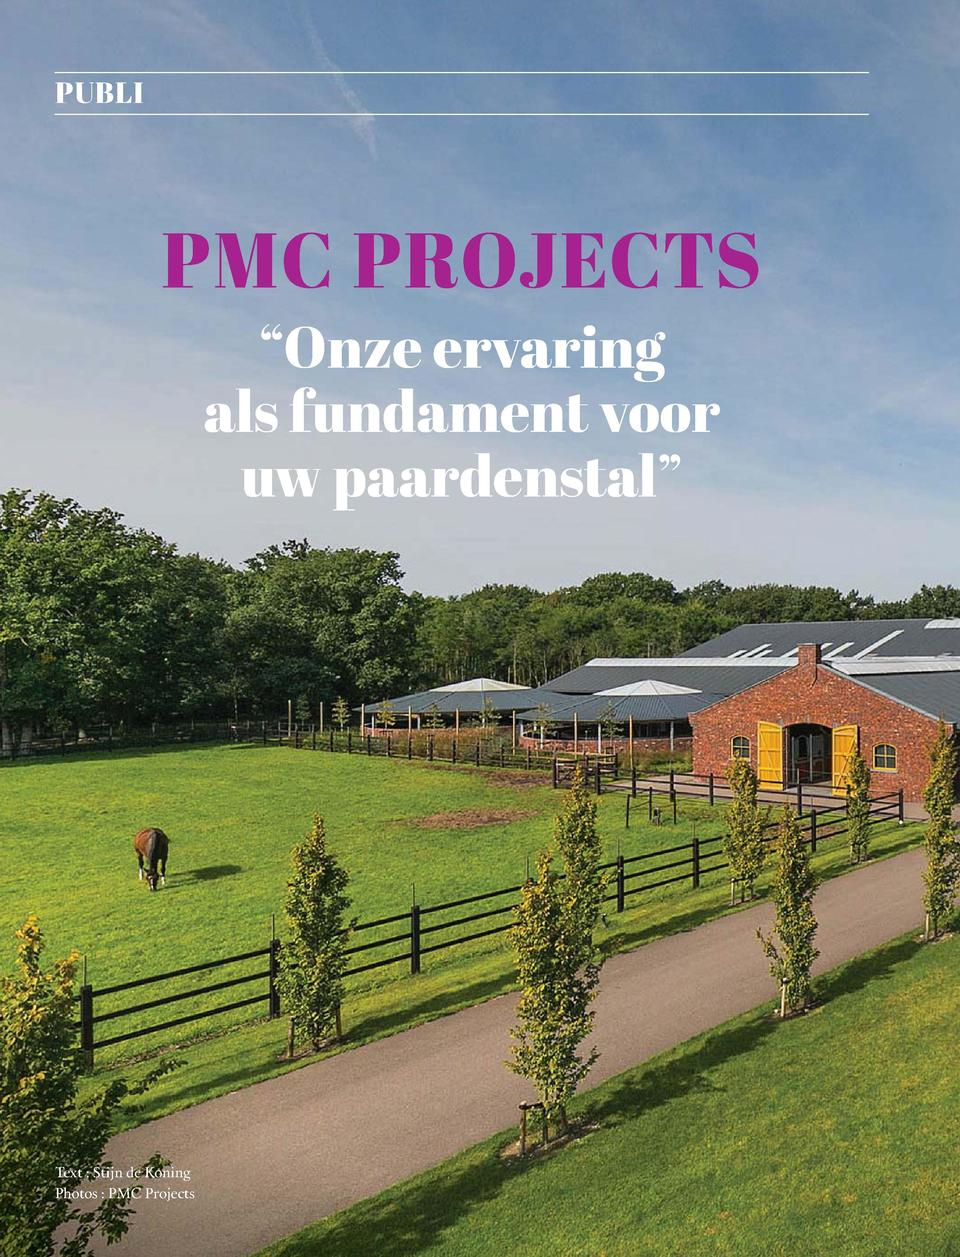 84  PUBLI  PMC PROJECTS    Onze ervaring als fundament voor uw paardenstal     Text   Stijn de Koning Photos   PMC Project...